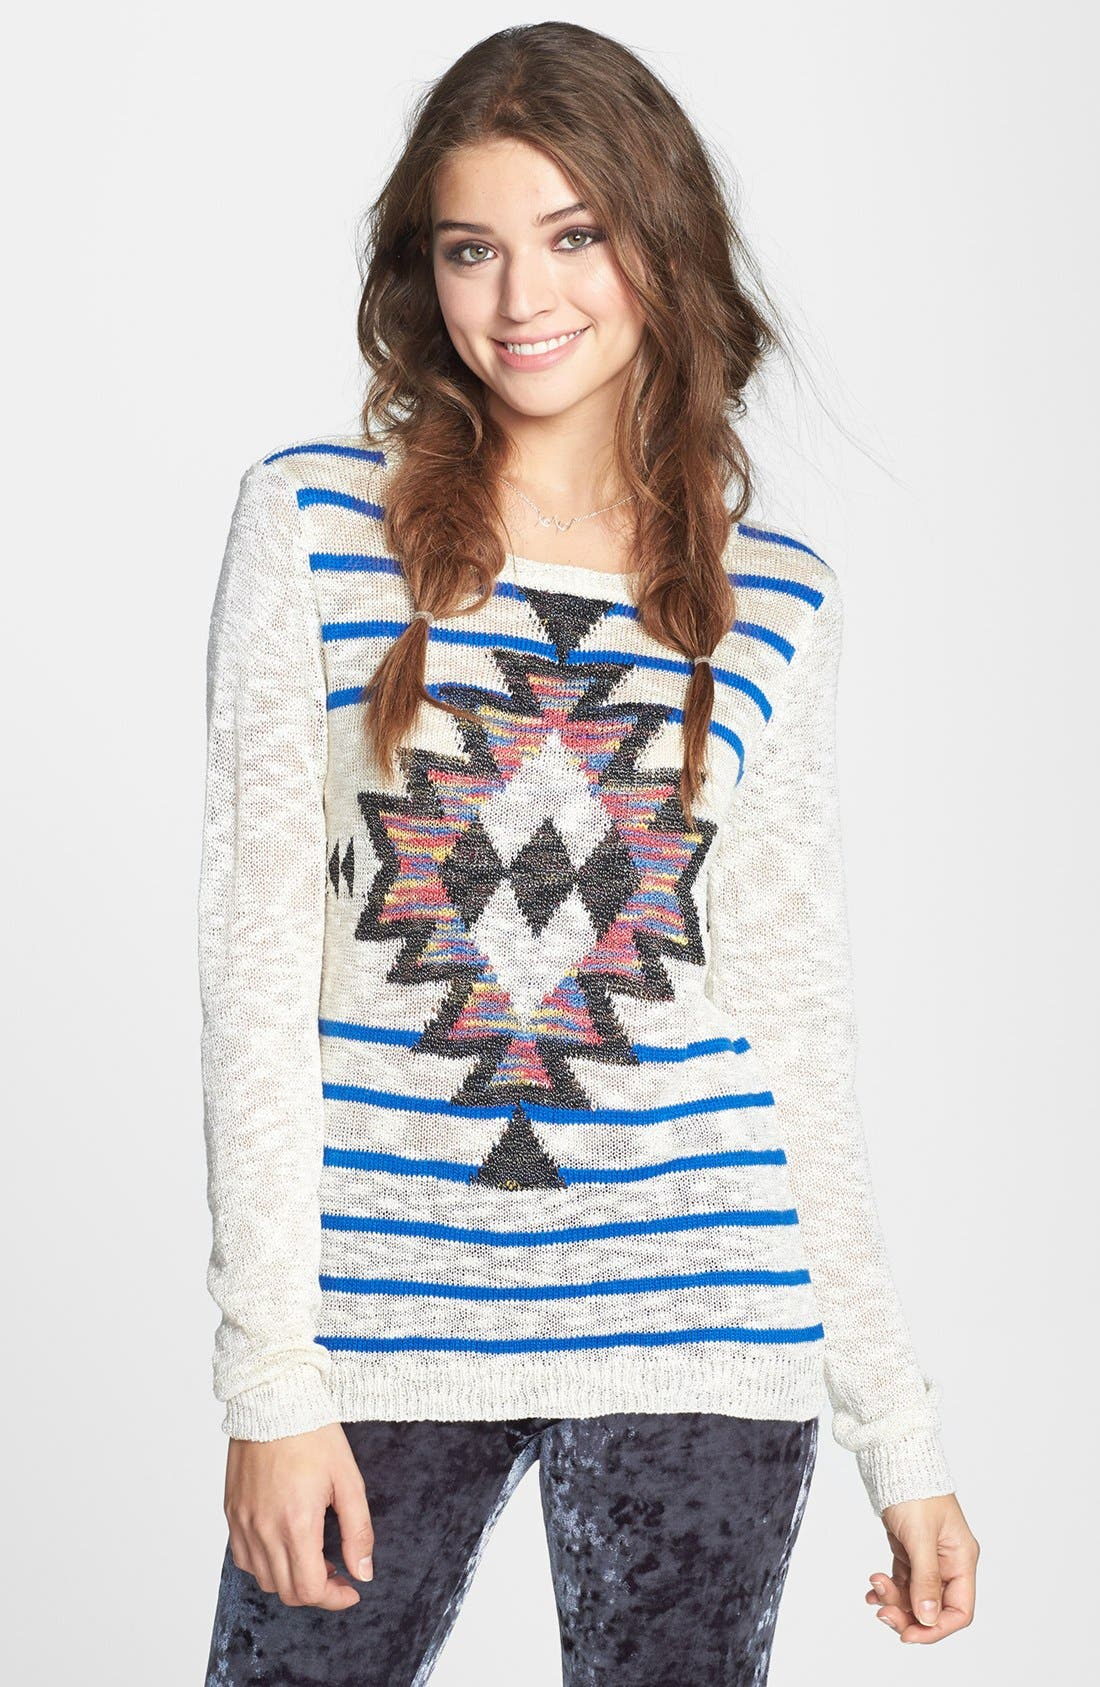 Alternate Image 1 Selected - Woven Heart Graphic Burnout Sweater (Juniors) (Online Only)